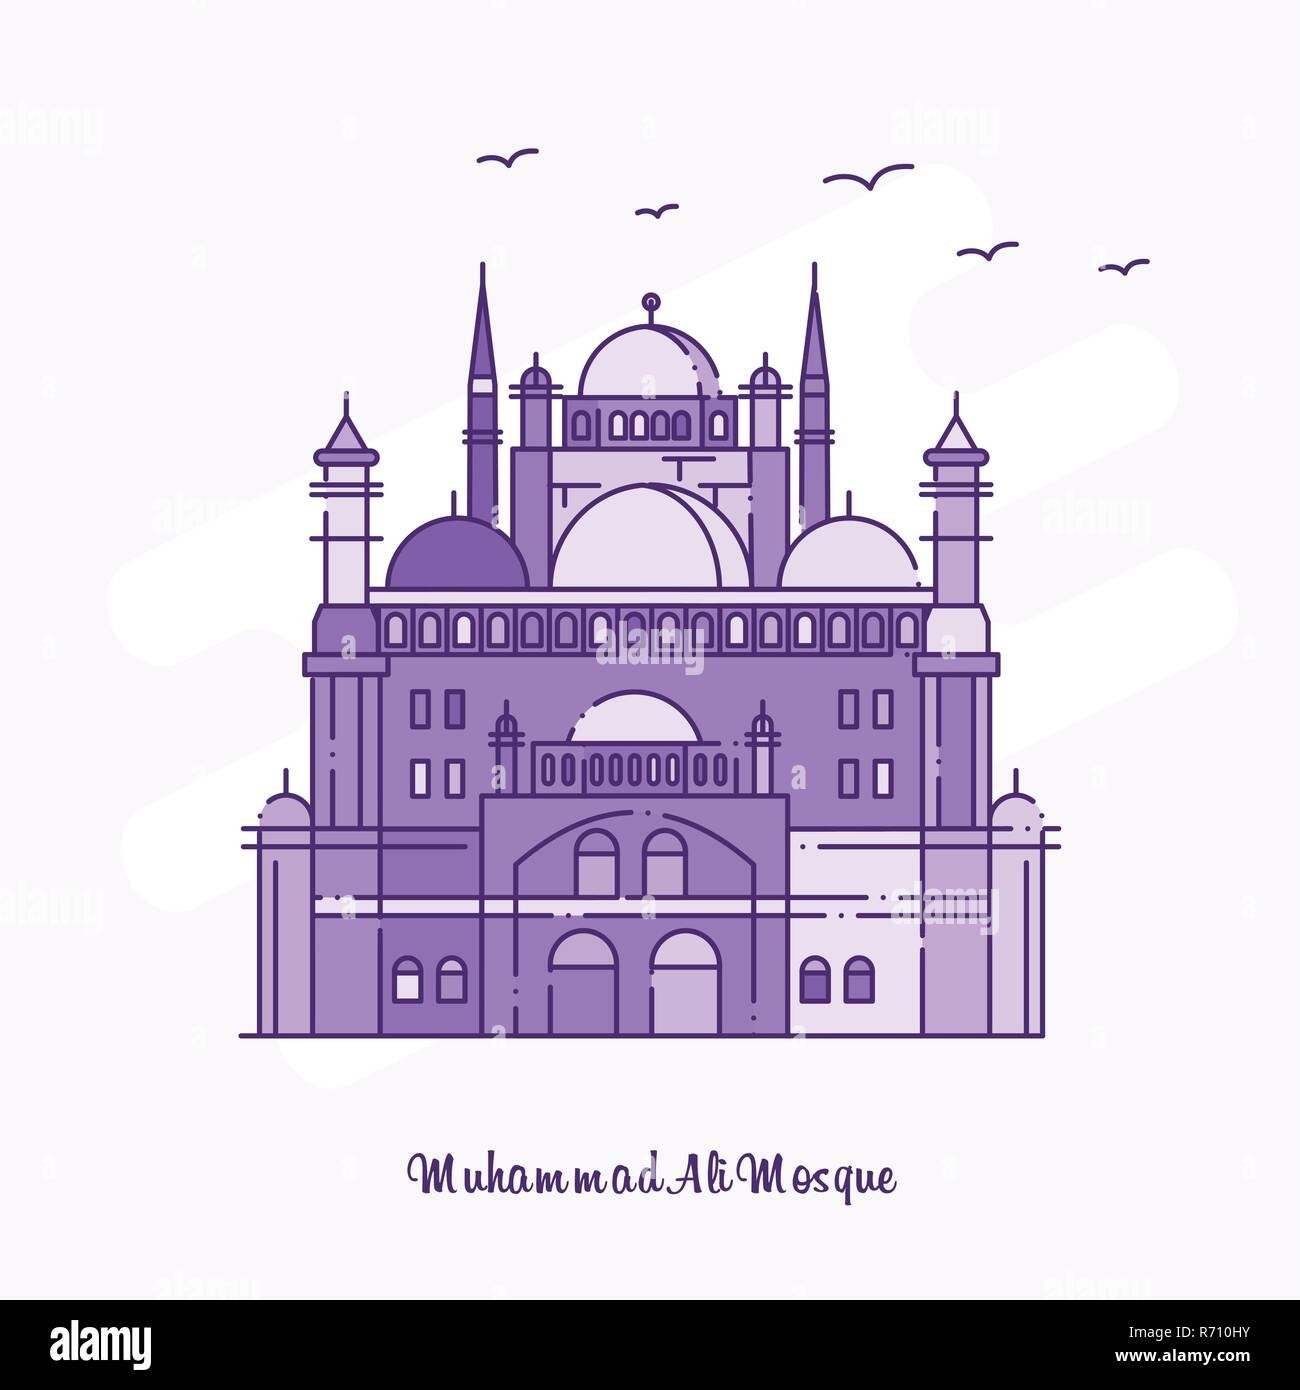 MUHAMMAD ALI MOSQUE Landmark Purple Dotted Line skyline vector illustration - Stock Image